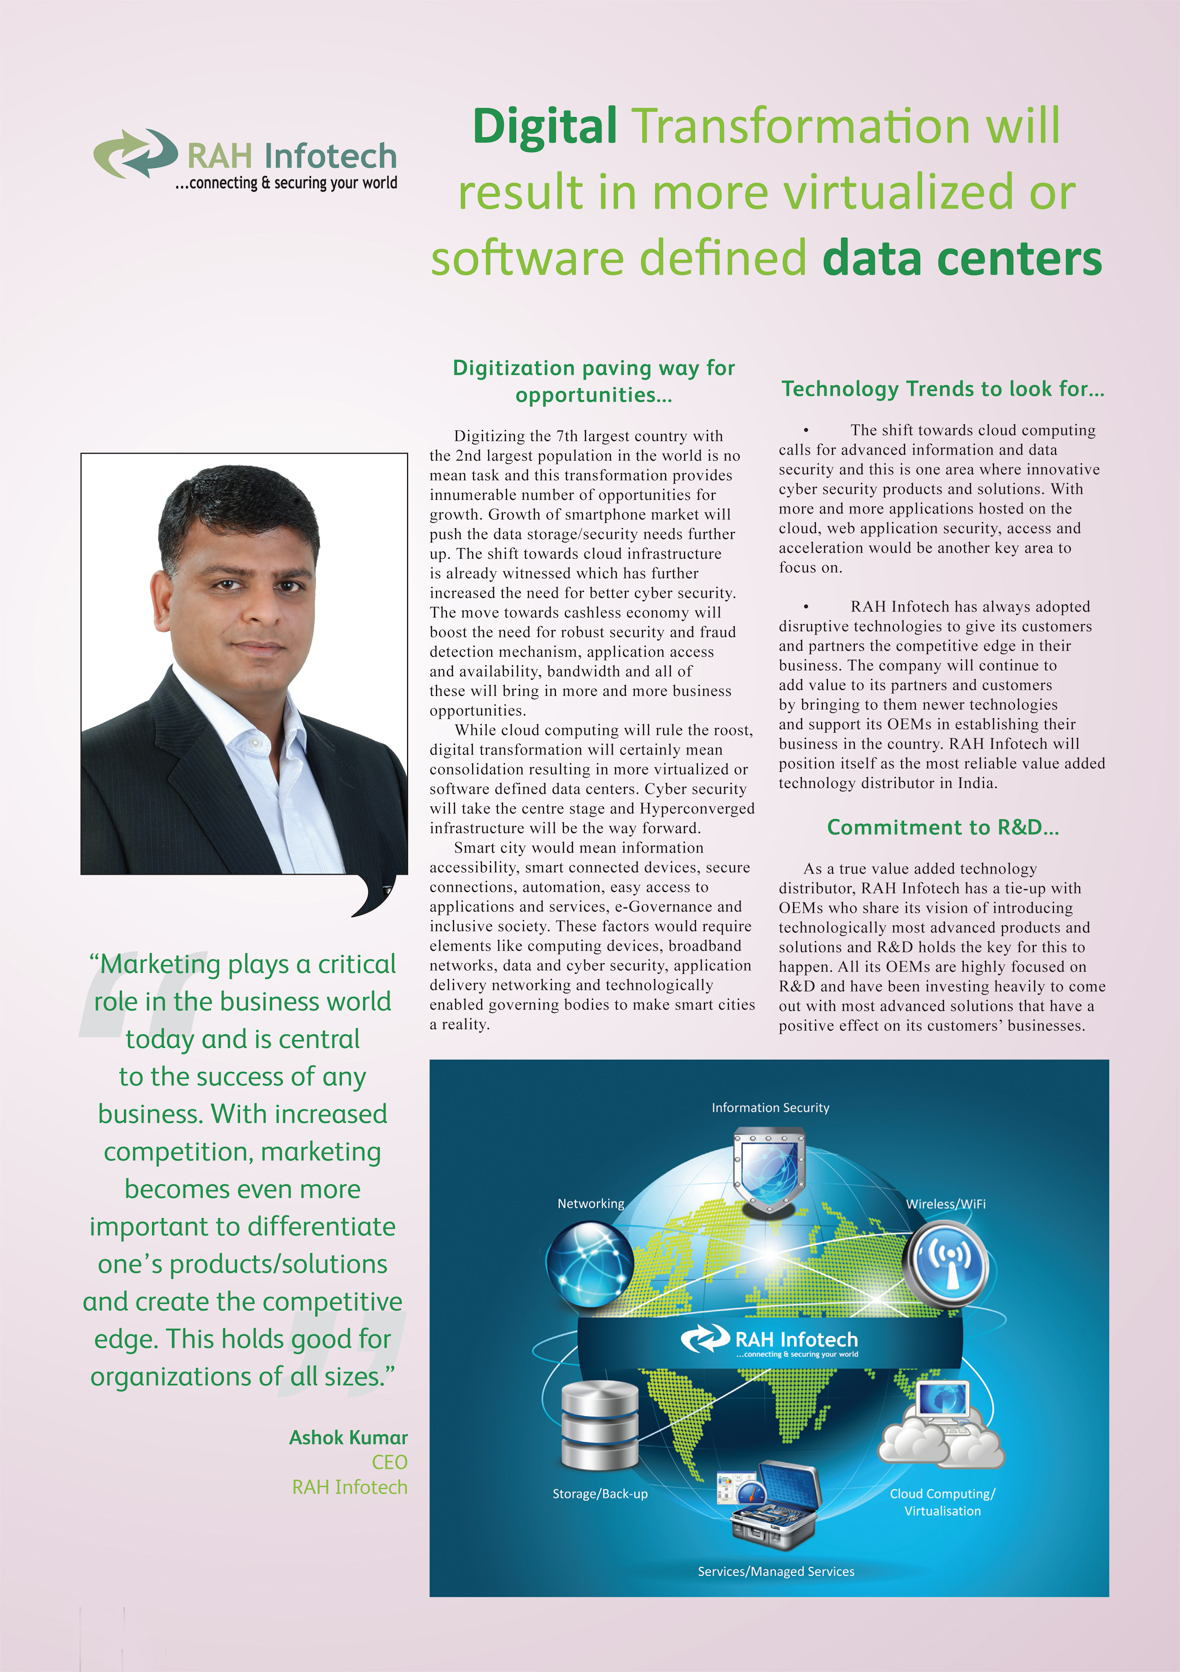 RAH Infotech : Digital Transformation will result in more virtualized or software defined data centers